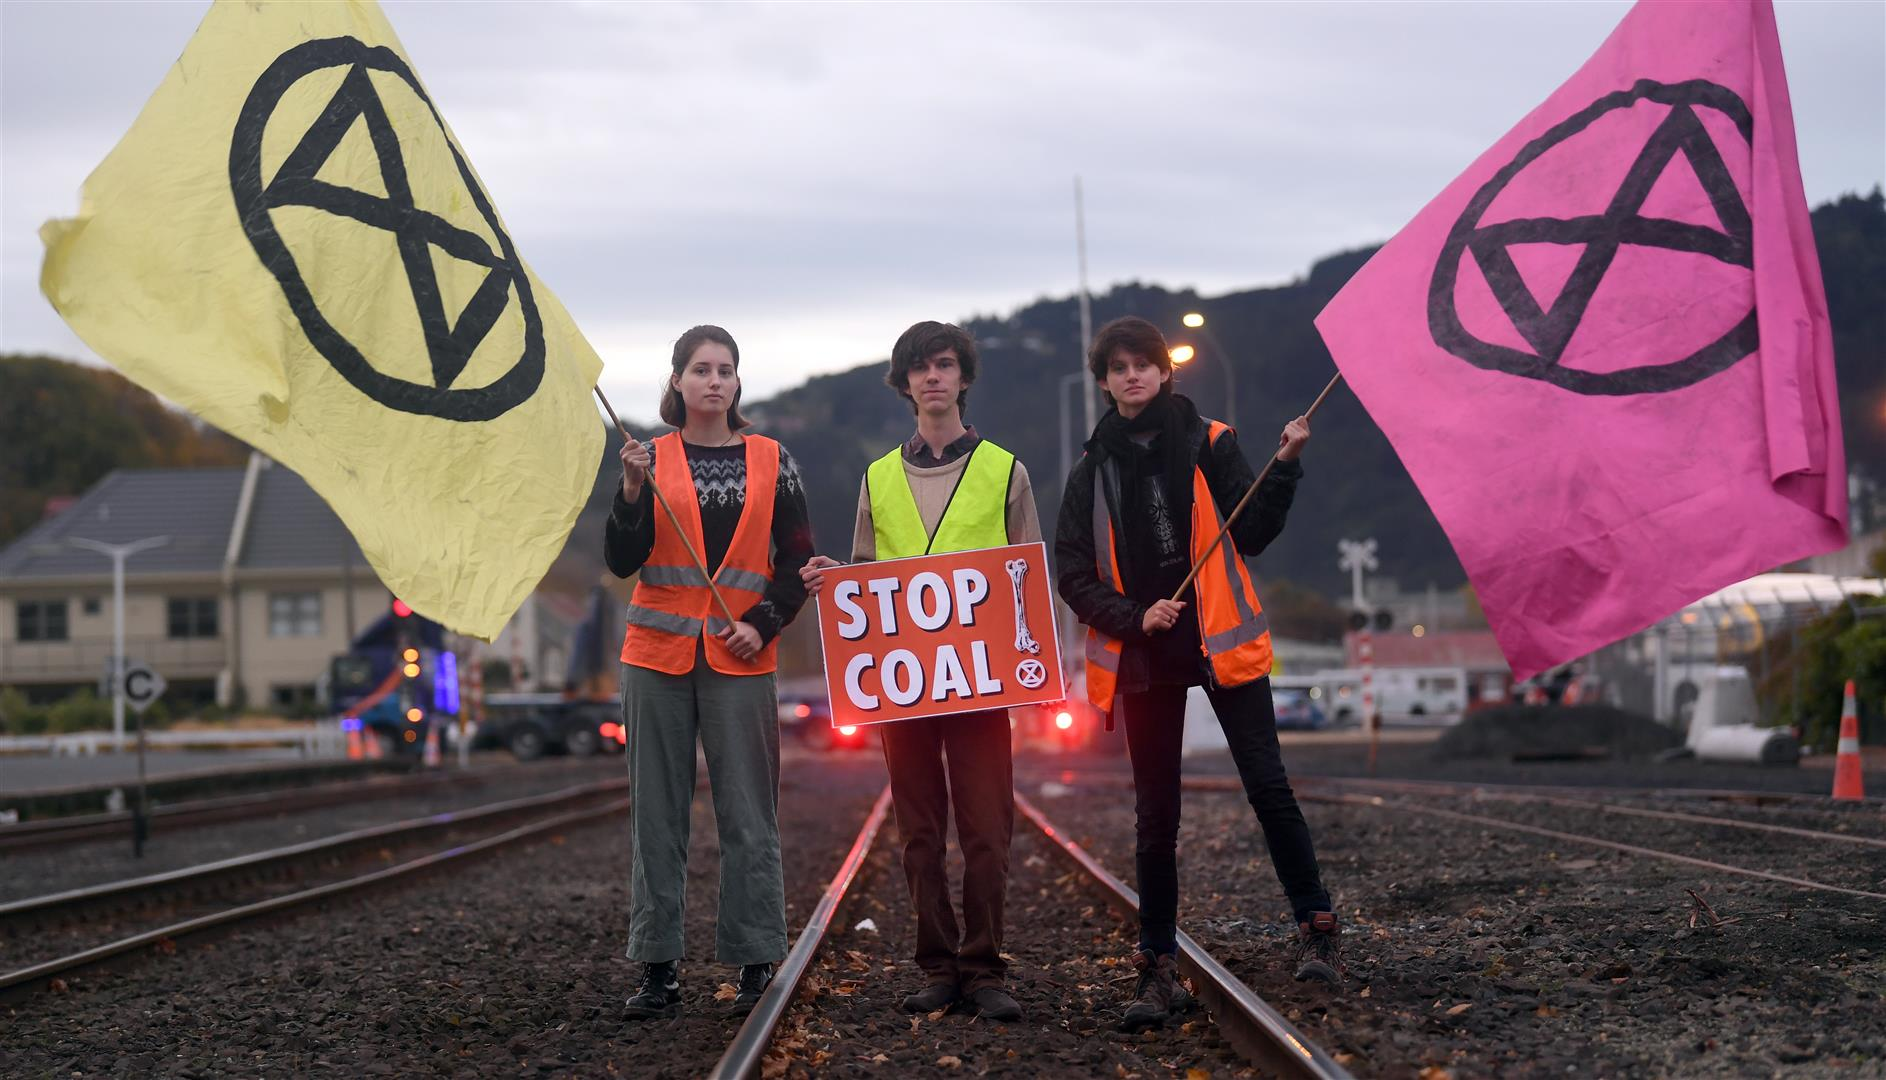 Protesters opposing the use and transport of coal block the railway tracks near the Dunedin Railway Station this morning. Photo: Stephen Jaquiery